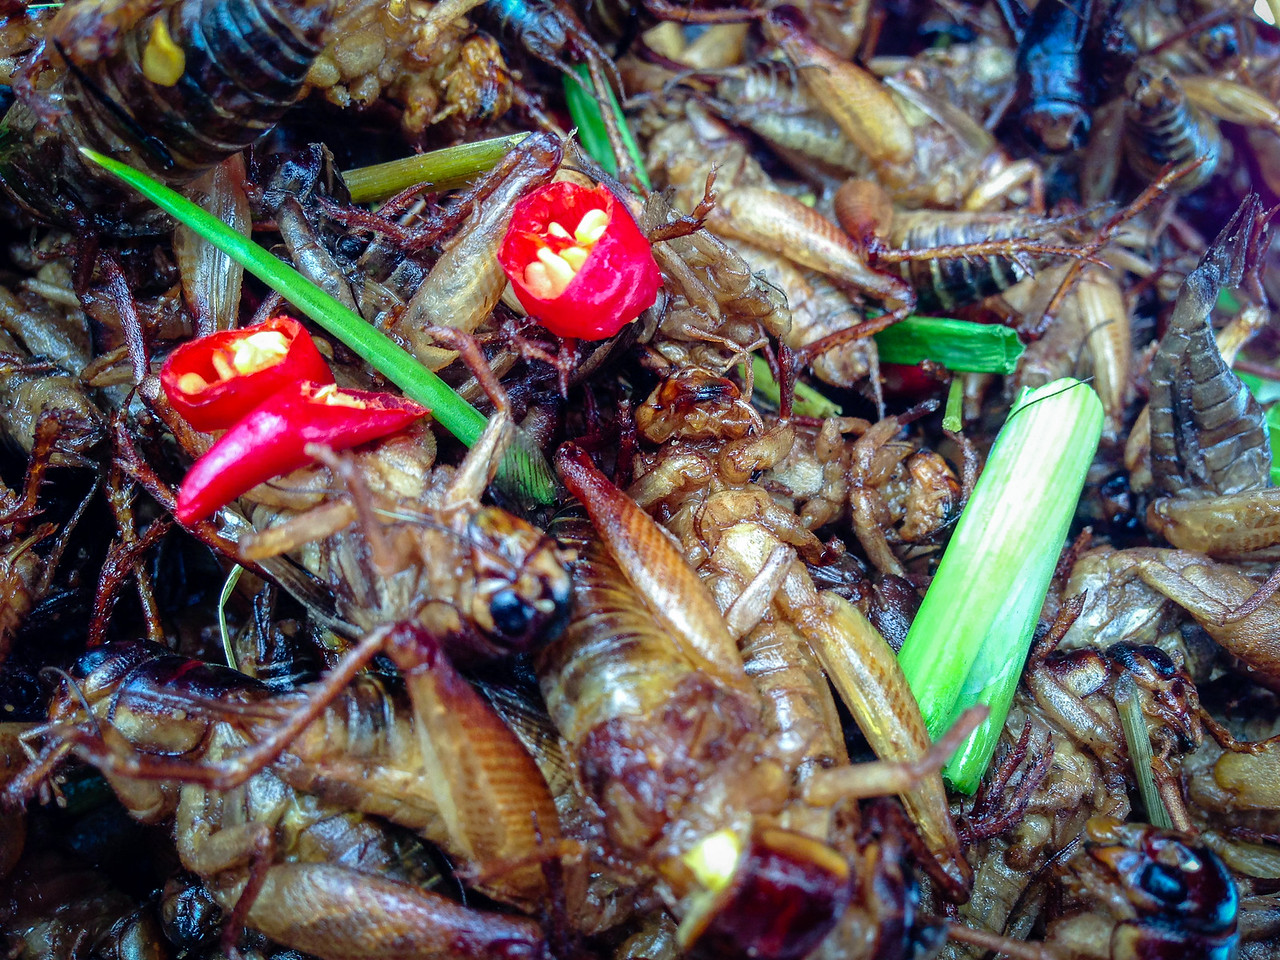 Stir-fried with Red Chile, Green Onion, Lemon Grass and a Little Salt is My Favorite Cricket Recipe